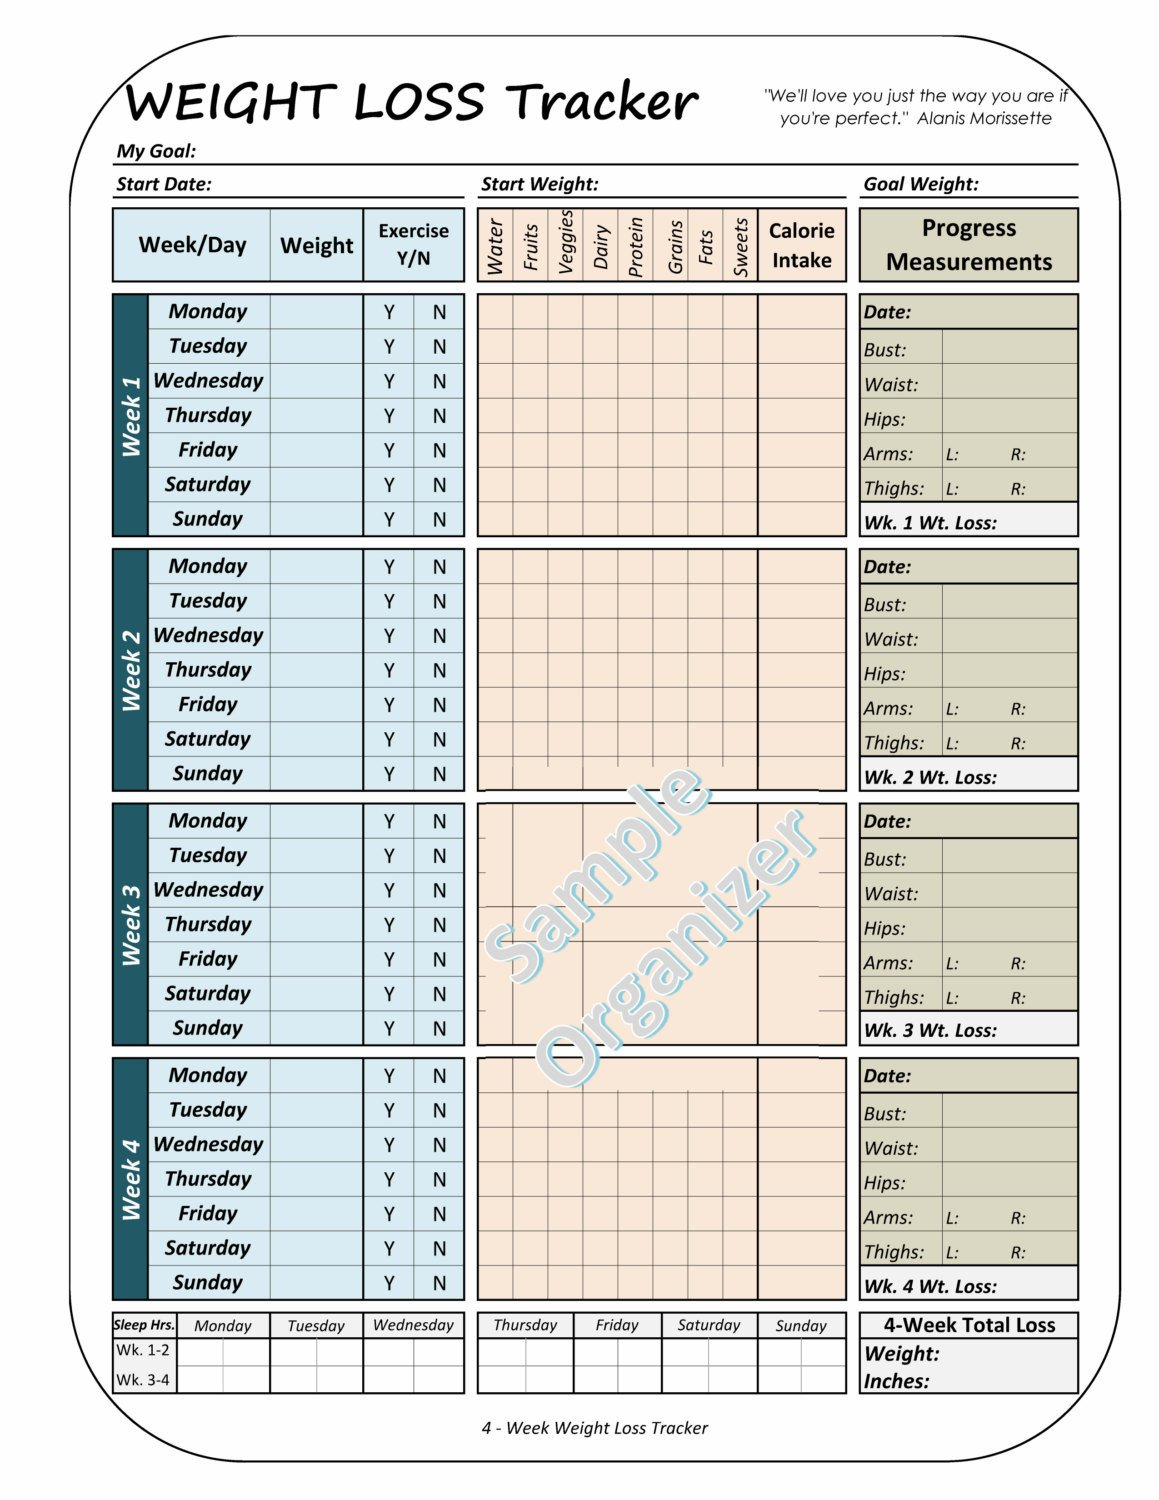 Weight Loss Tracker Template Weight Loss Tracker Printable Weight Loss Planner 4 Week